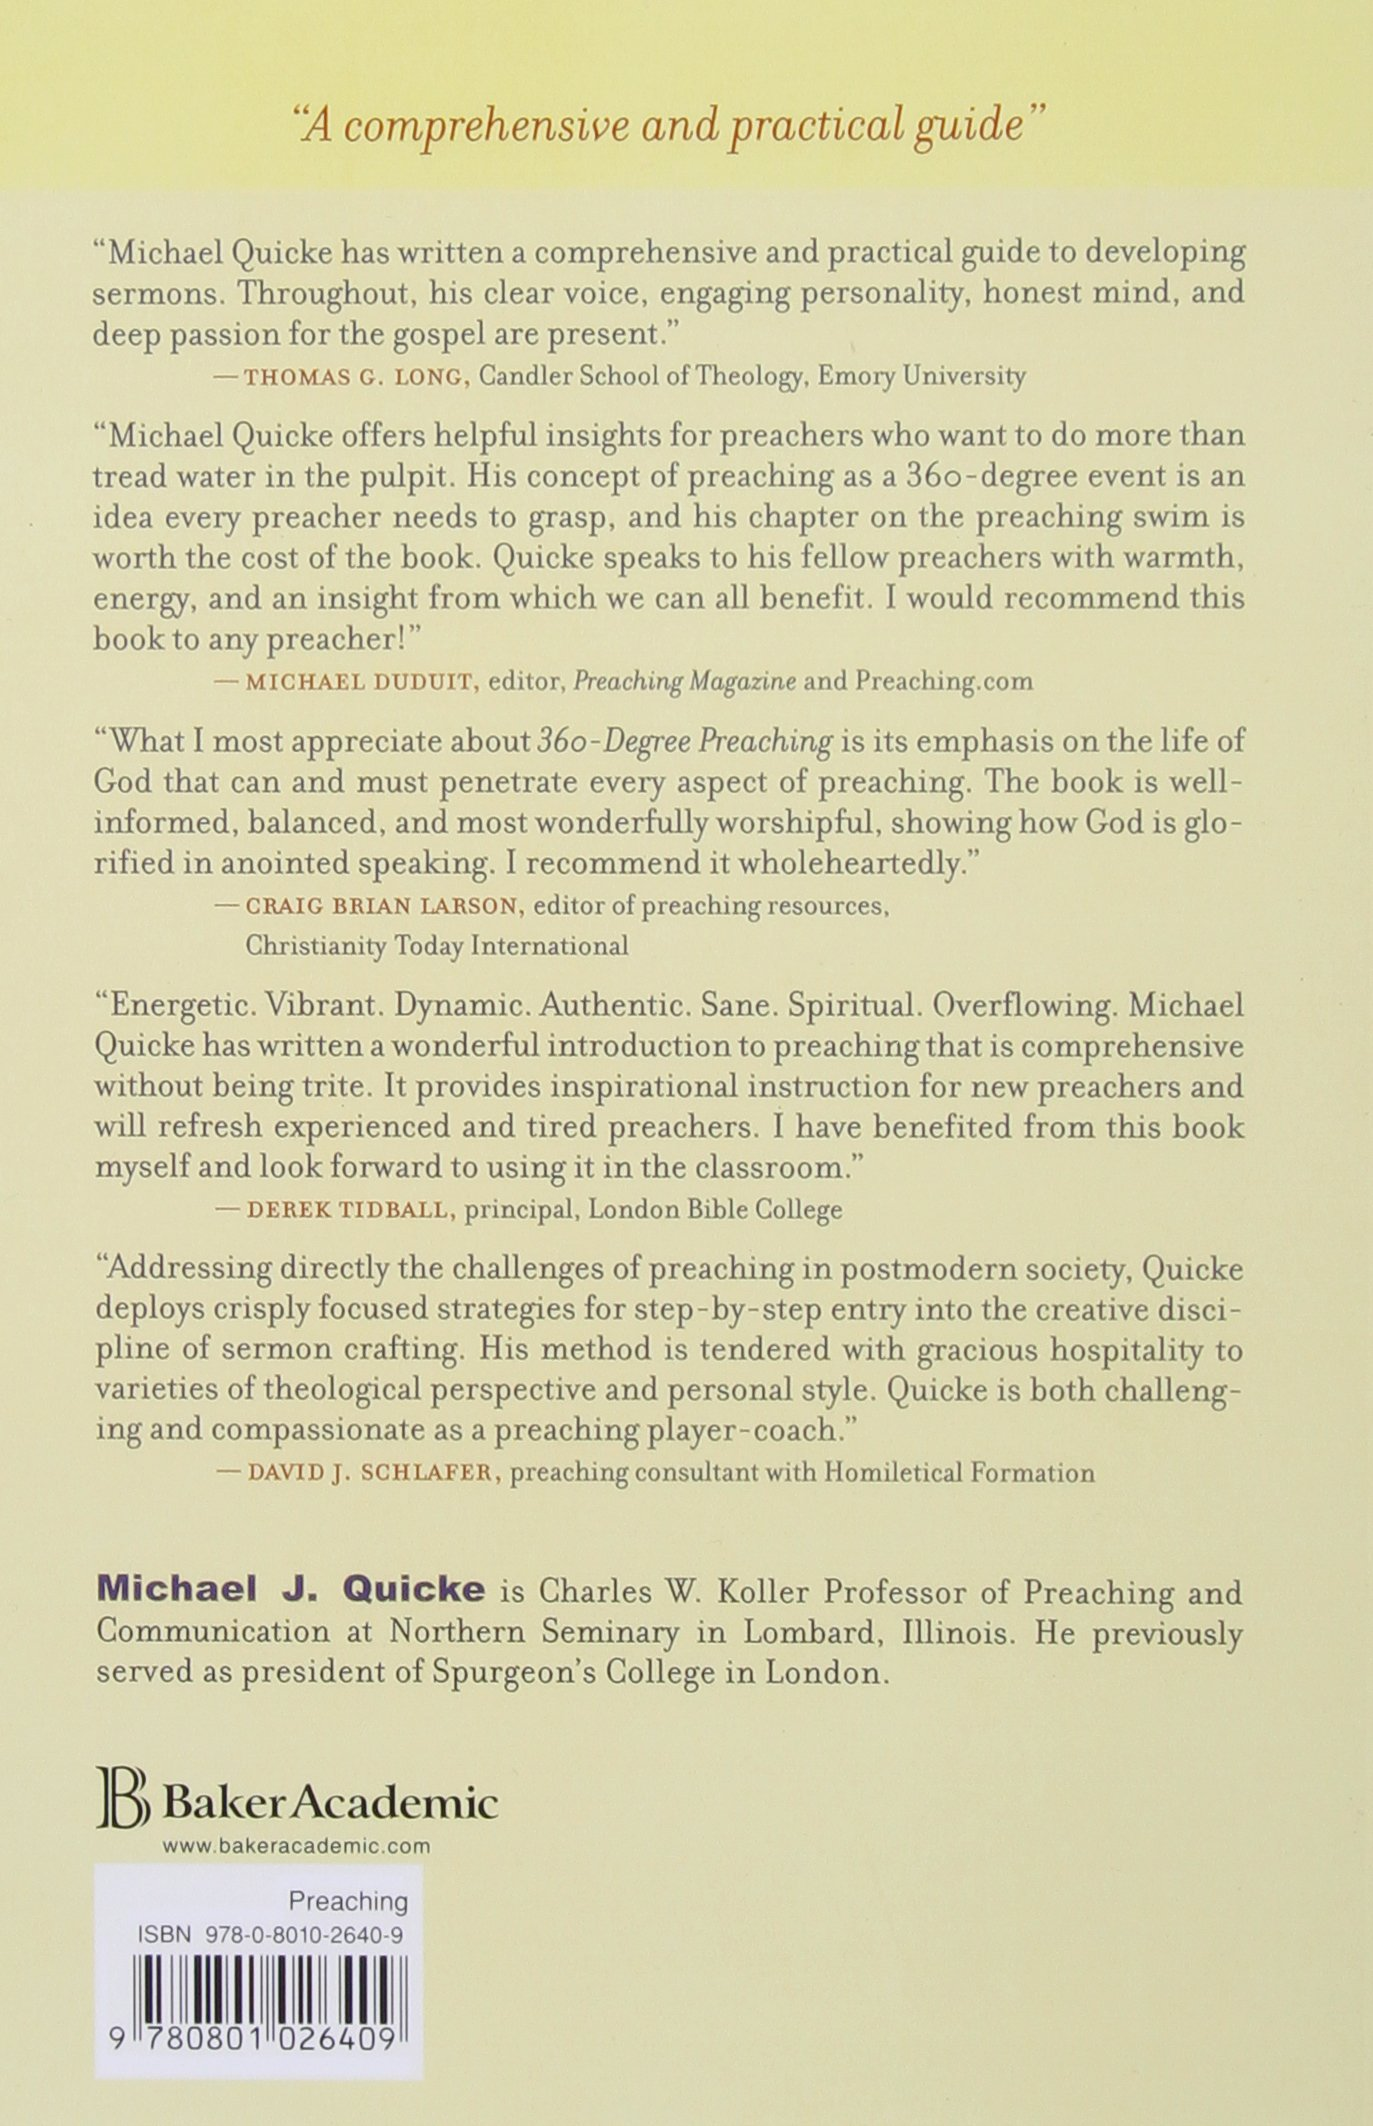 360 Degree Preaching: Hearing, Speaking, And Living The Word: Amazon:  Michael Quicke: 9780801026409: Books